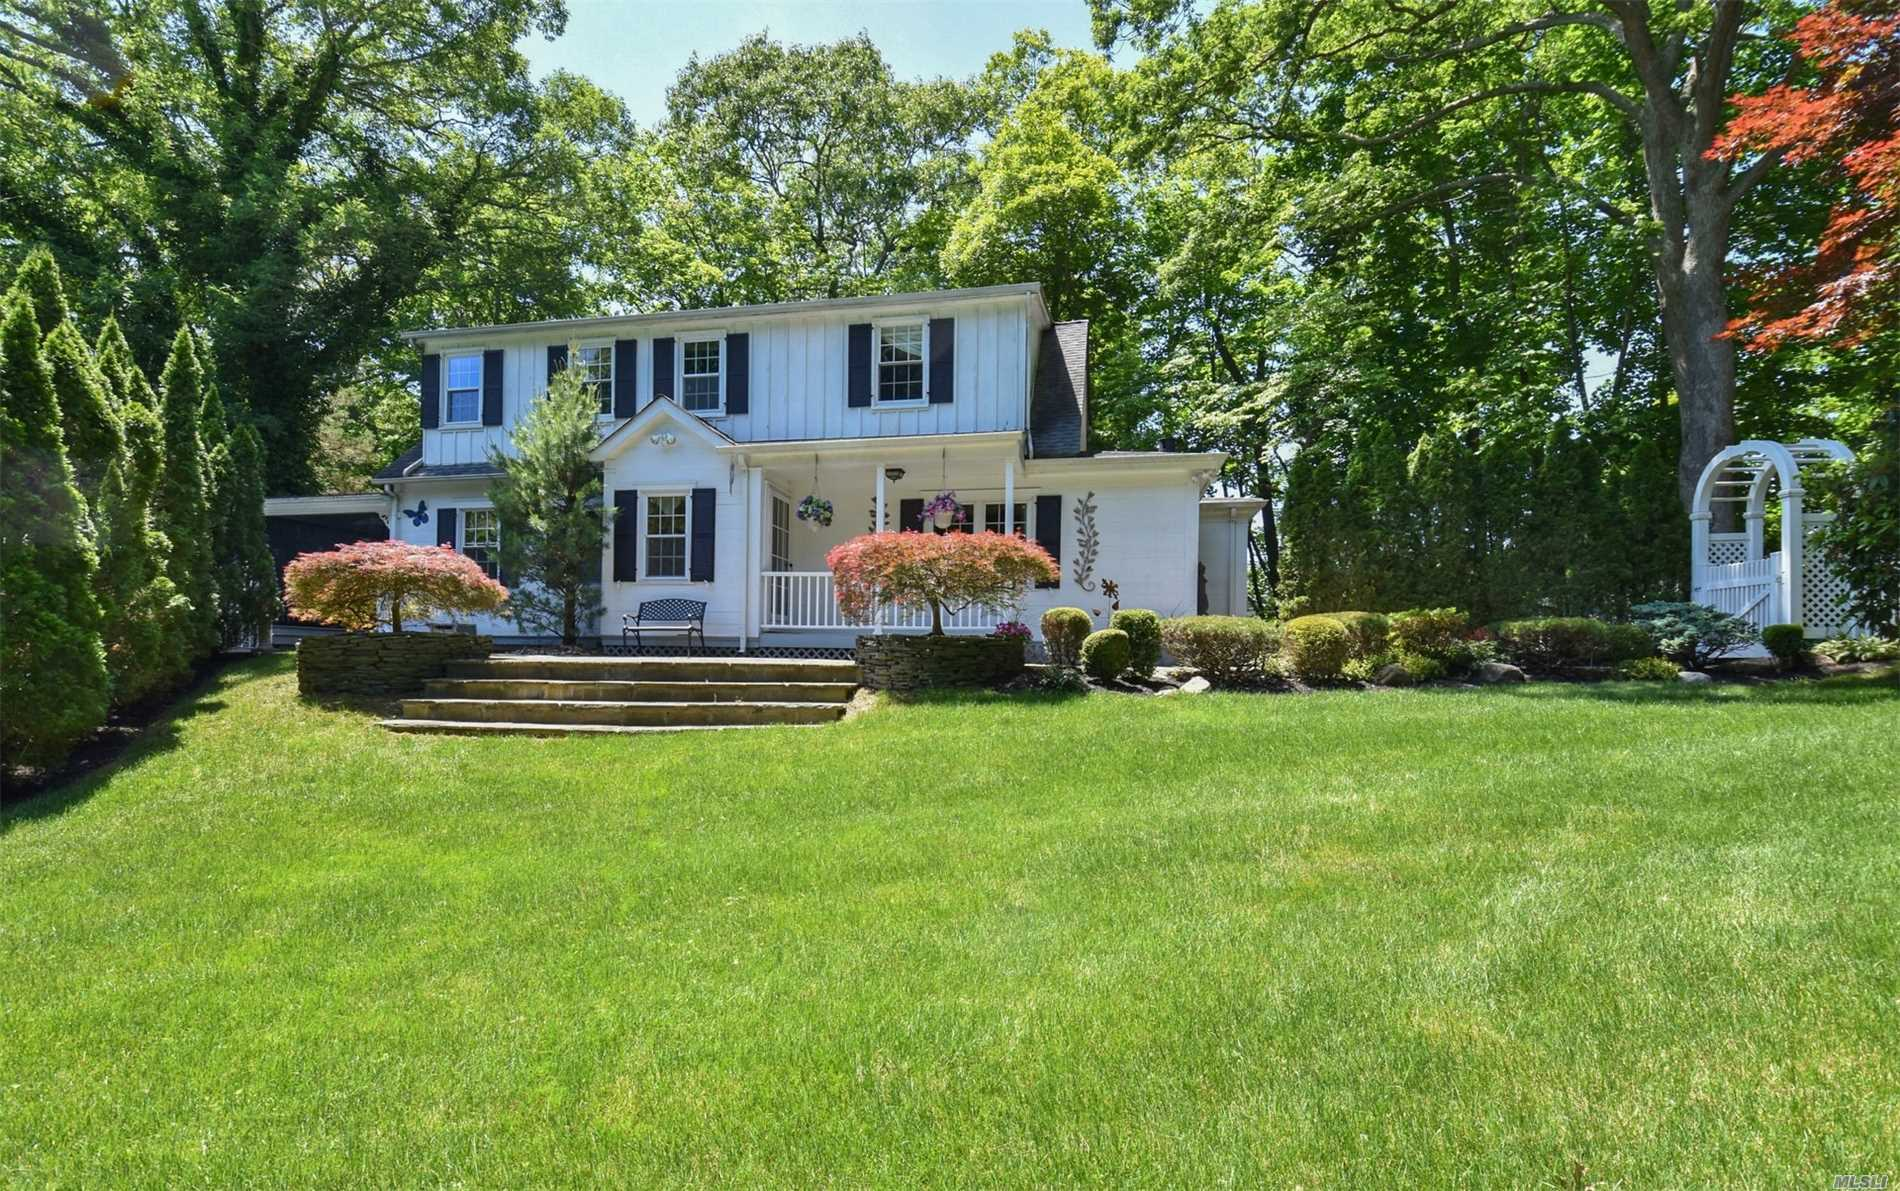 Impeccably Maintained And Cared For Carriage House Built In 1912. This House Boasts All Modern Amenities While Maintaining Old World Charm With An Abundance Of Original Details Throughout. Updated Kitchen And Baths. Full Finished Basement. Situated On An Acre Of Private And Serene Property With A Gas Heated Pool And Deck. New Roof And Siding. Detached 2 Car Garage.